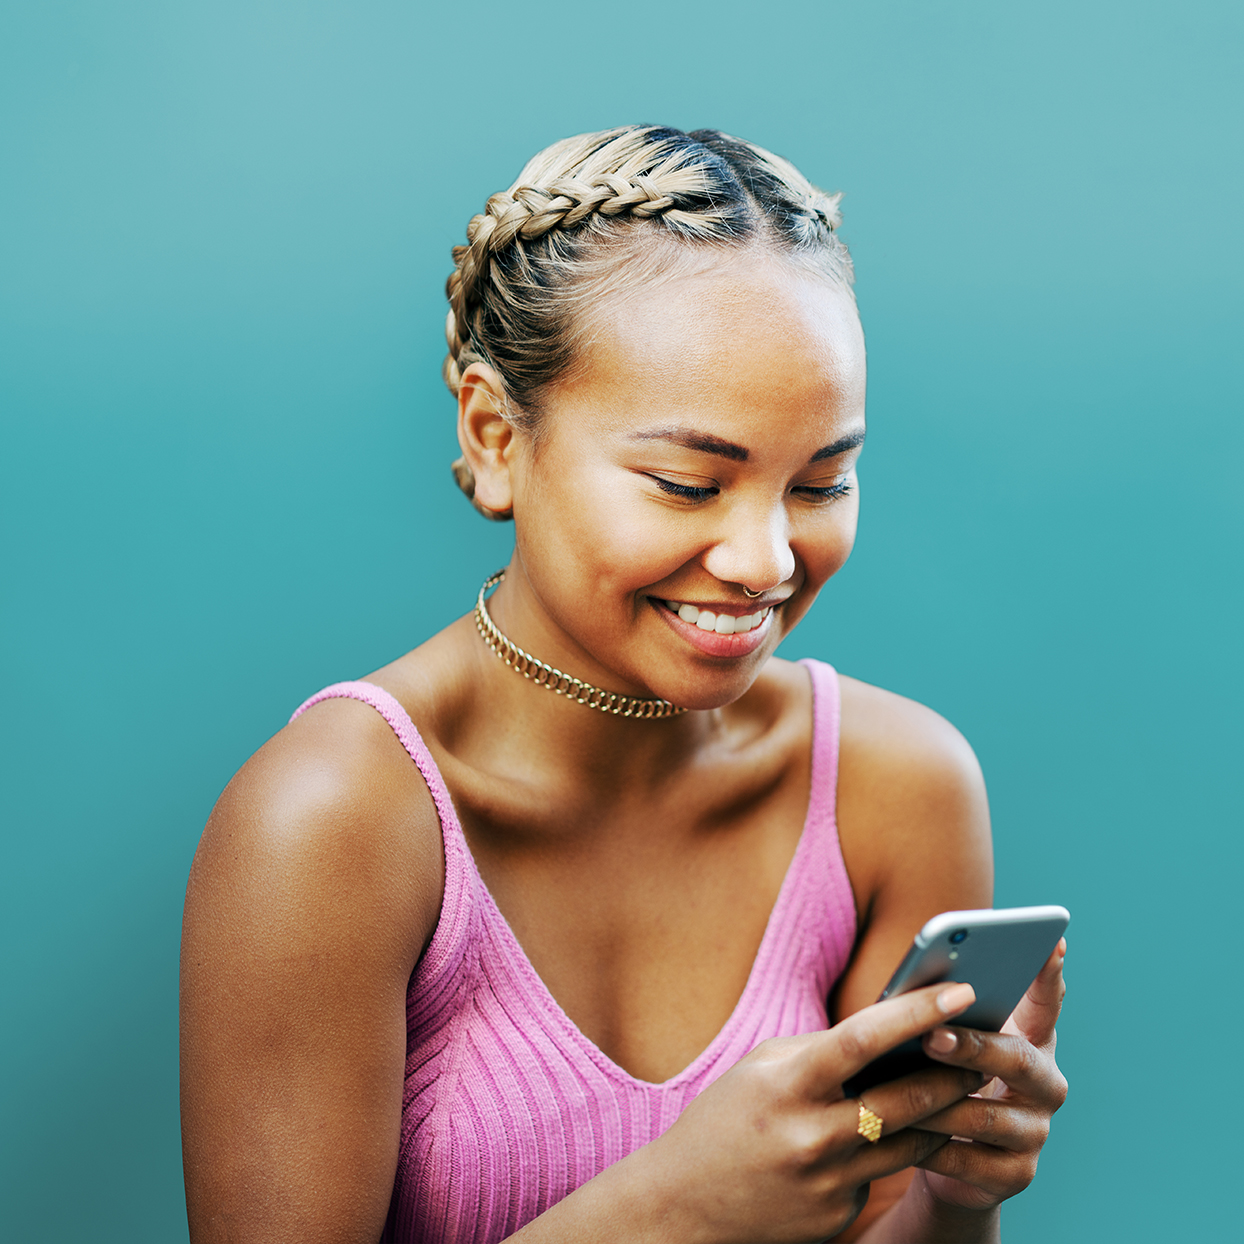 Woman smiling with smart phone, blue wall